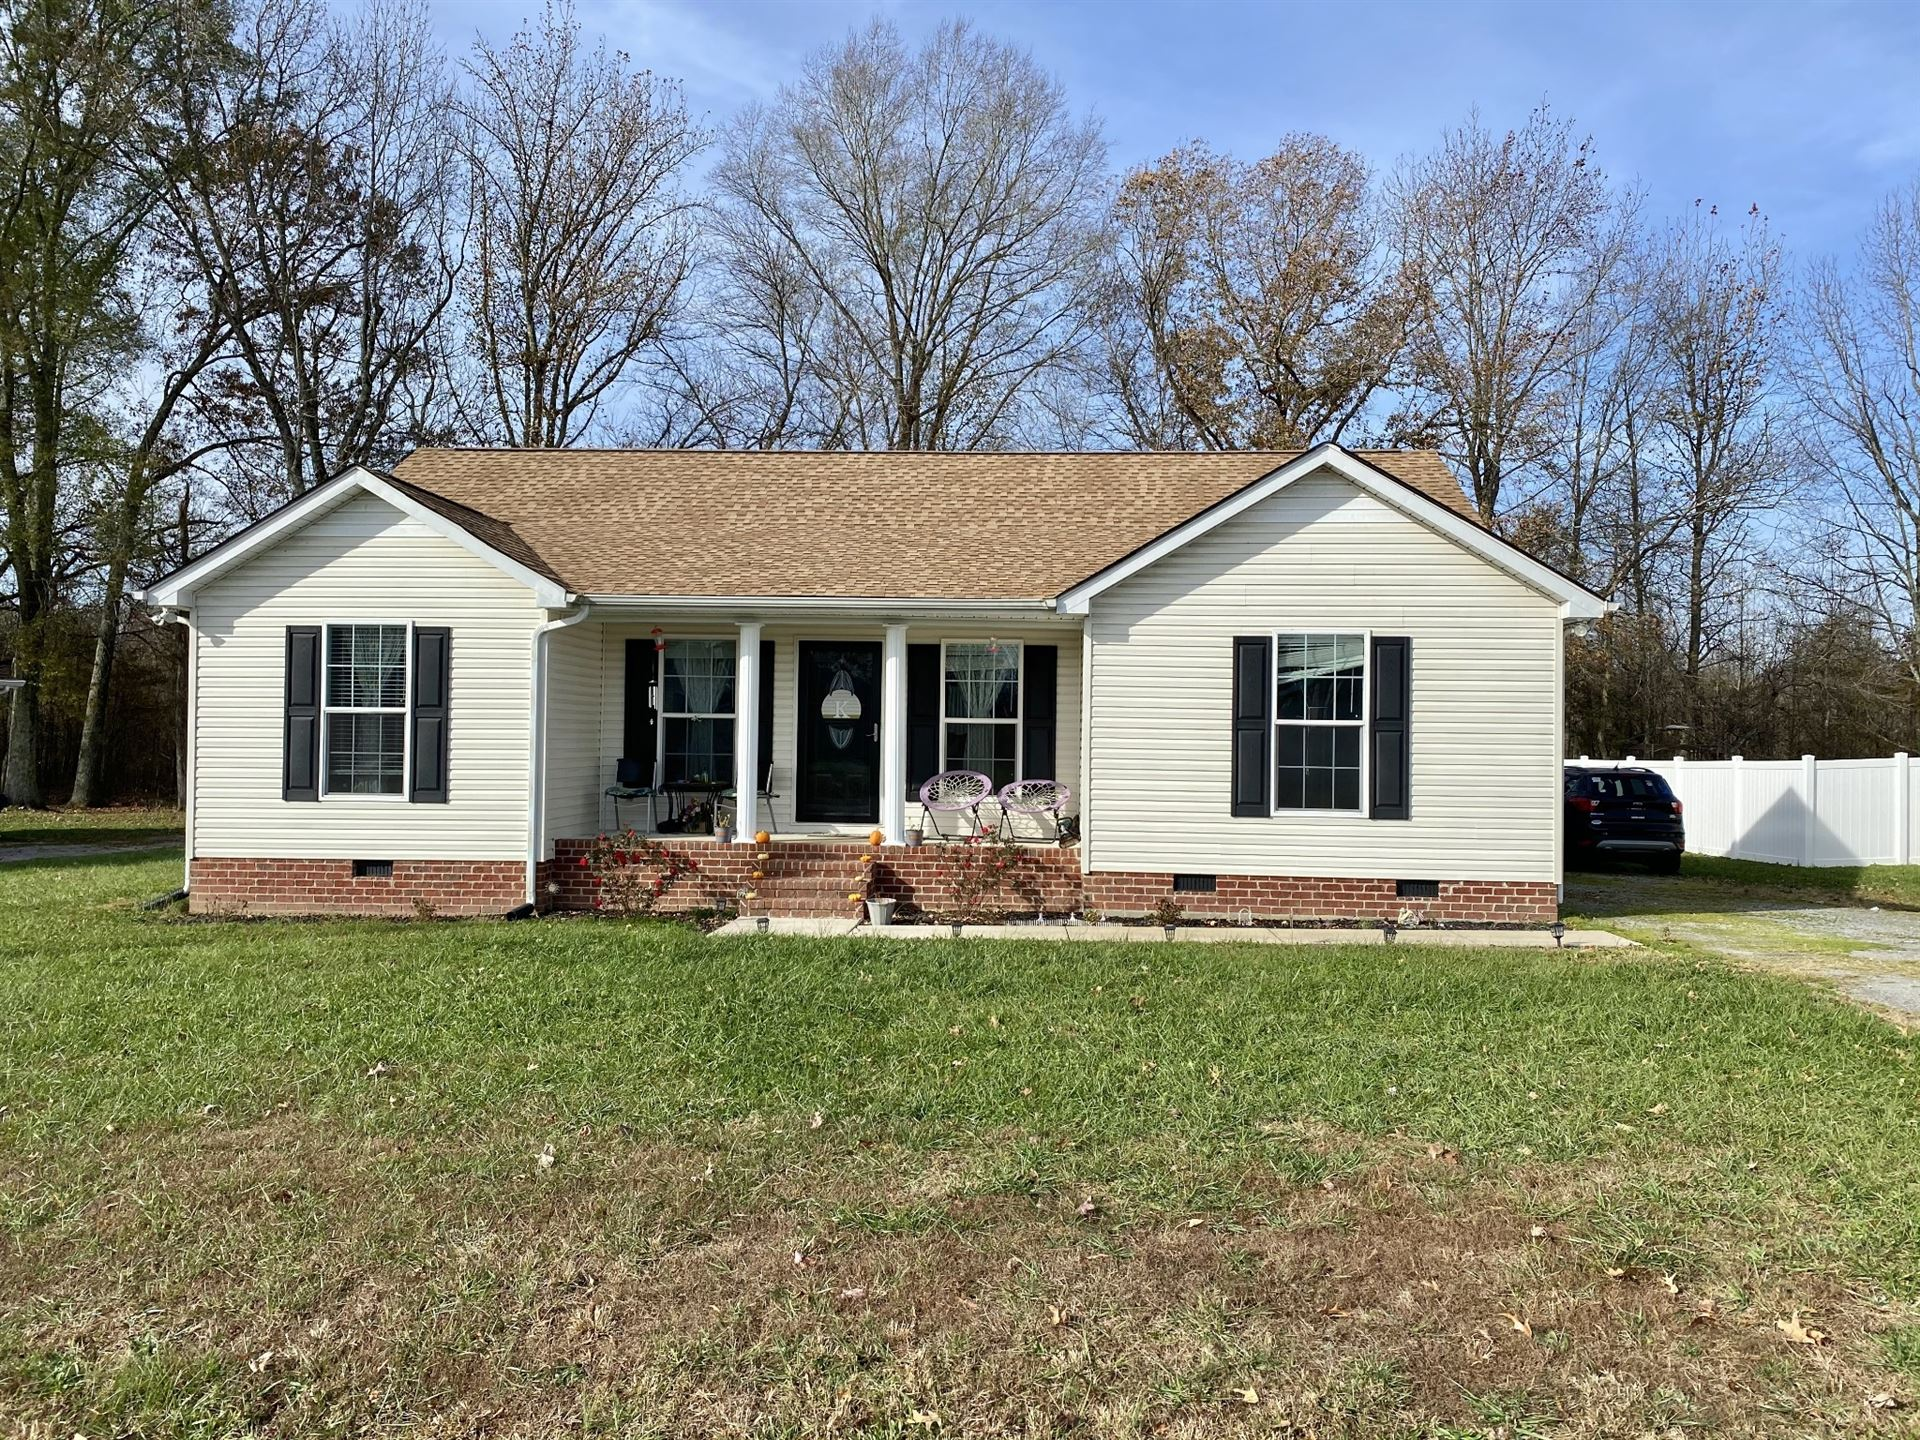 217 Spring Breeze Dr, Smithville, TN 37166 - MLS#: 2209265